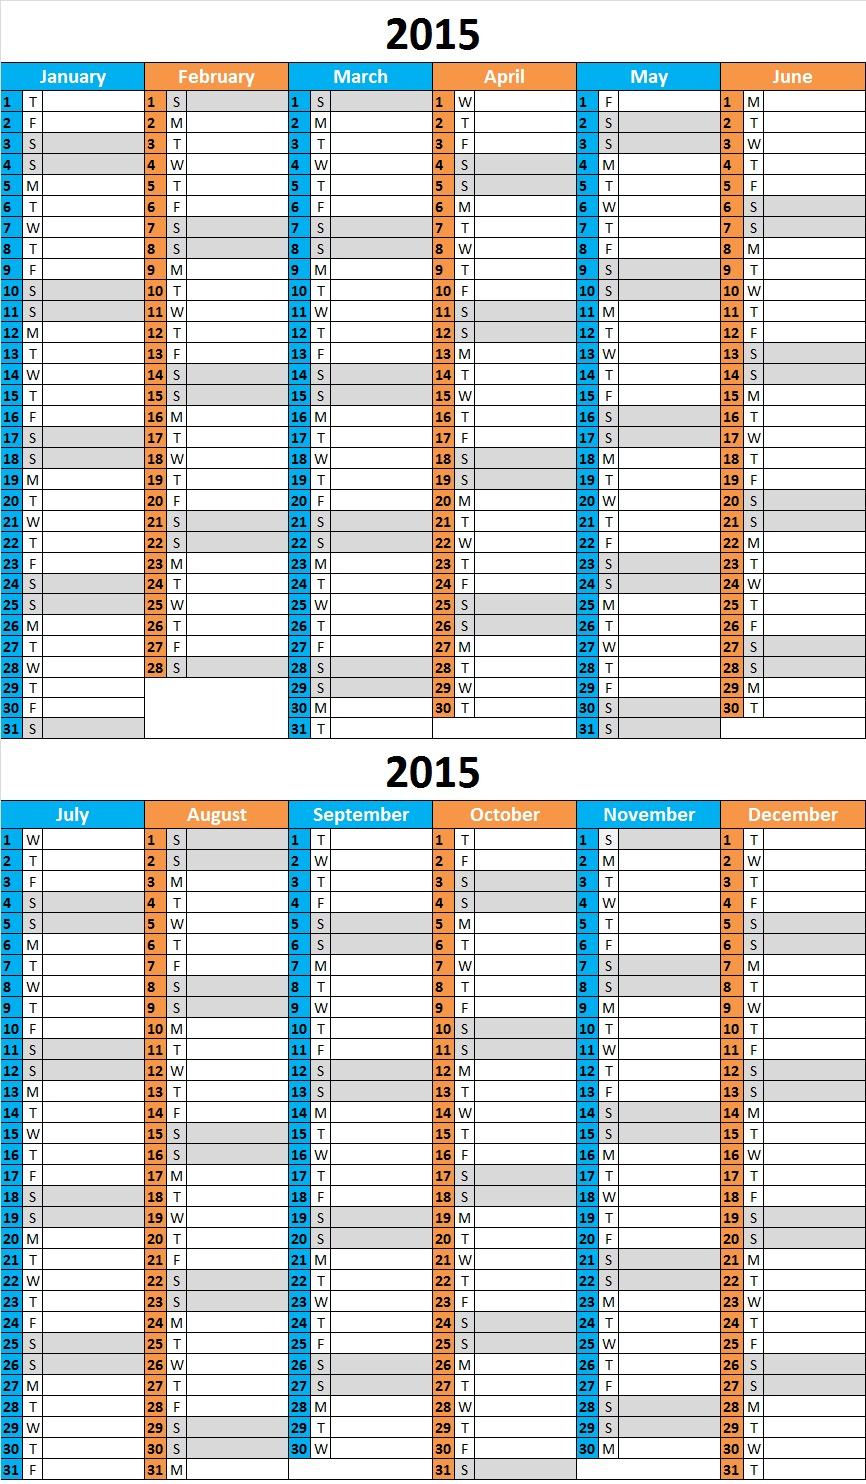 2017 calendar one page 12 months vertical grid green row monday